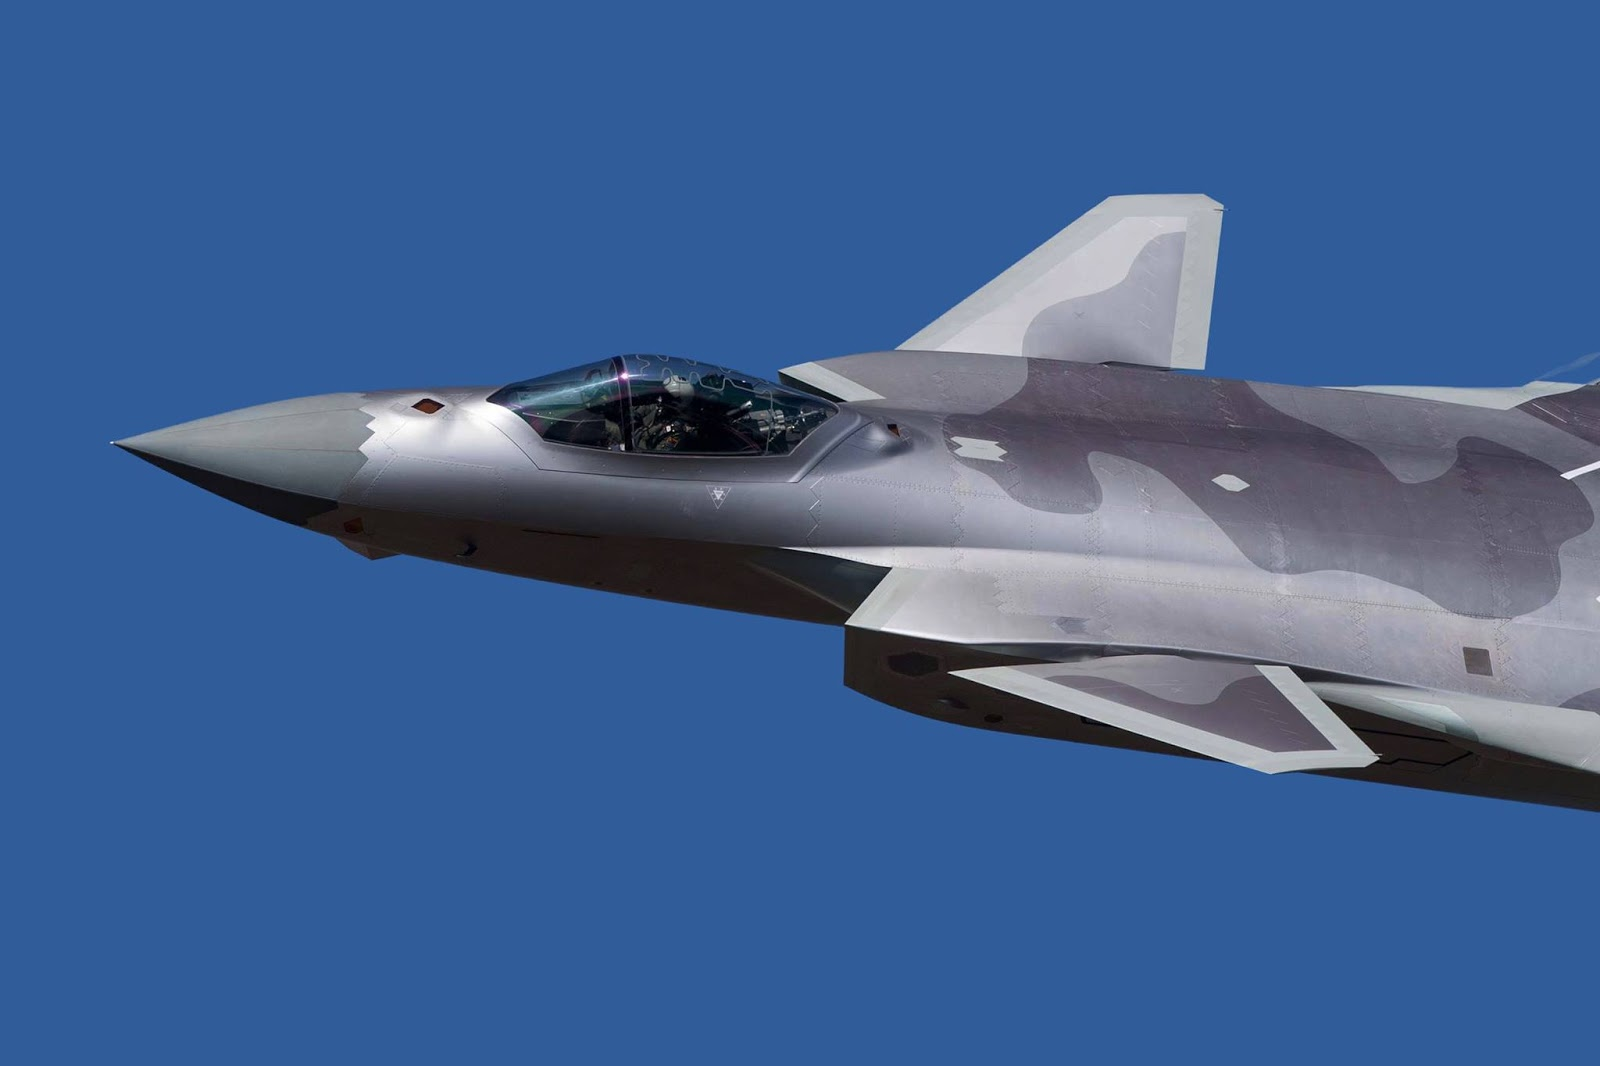 Chinese Chengdu J-20 stealth fighter - Page 7 45979419_901374453400589_7007866530771763200_o